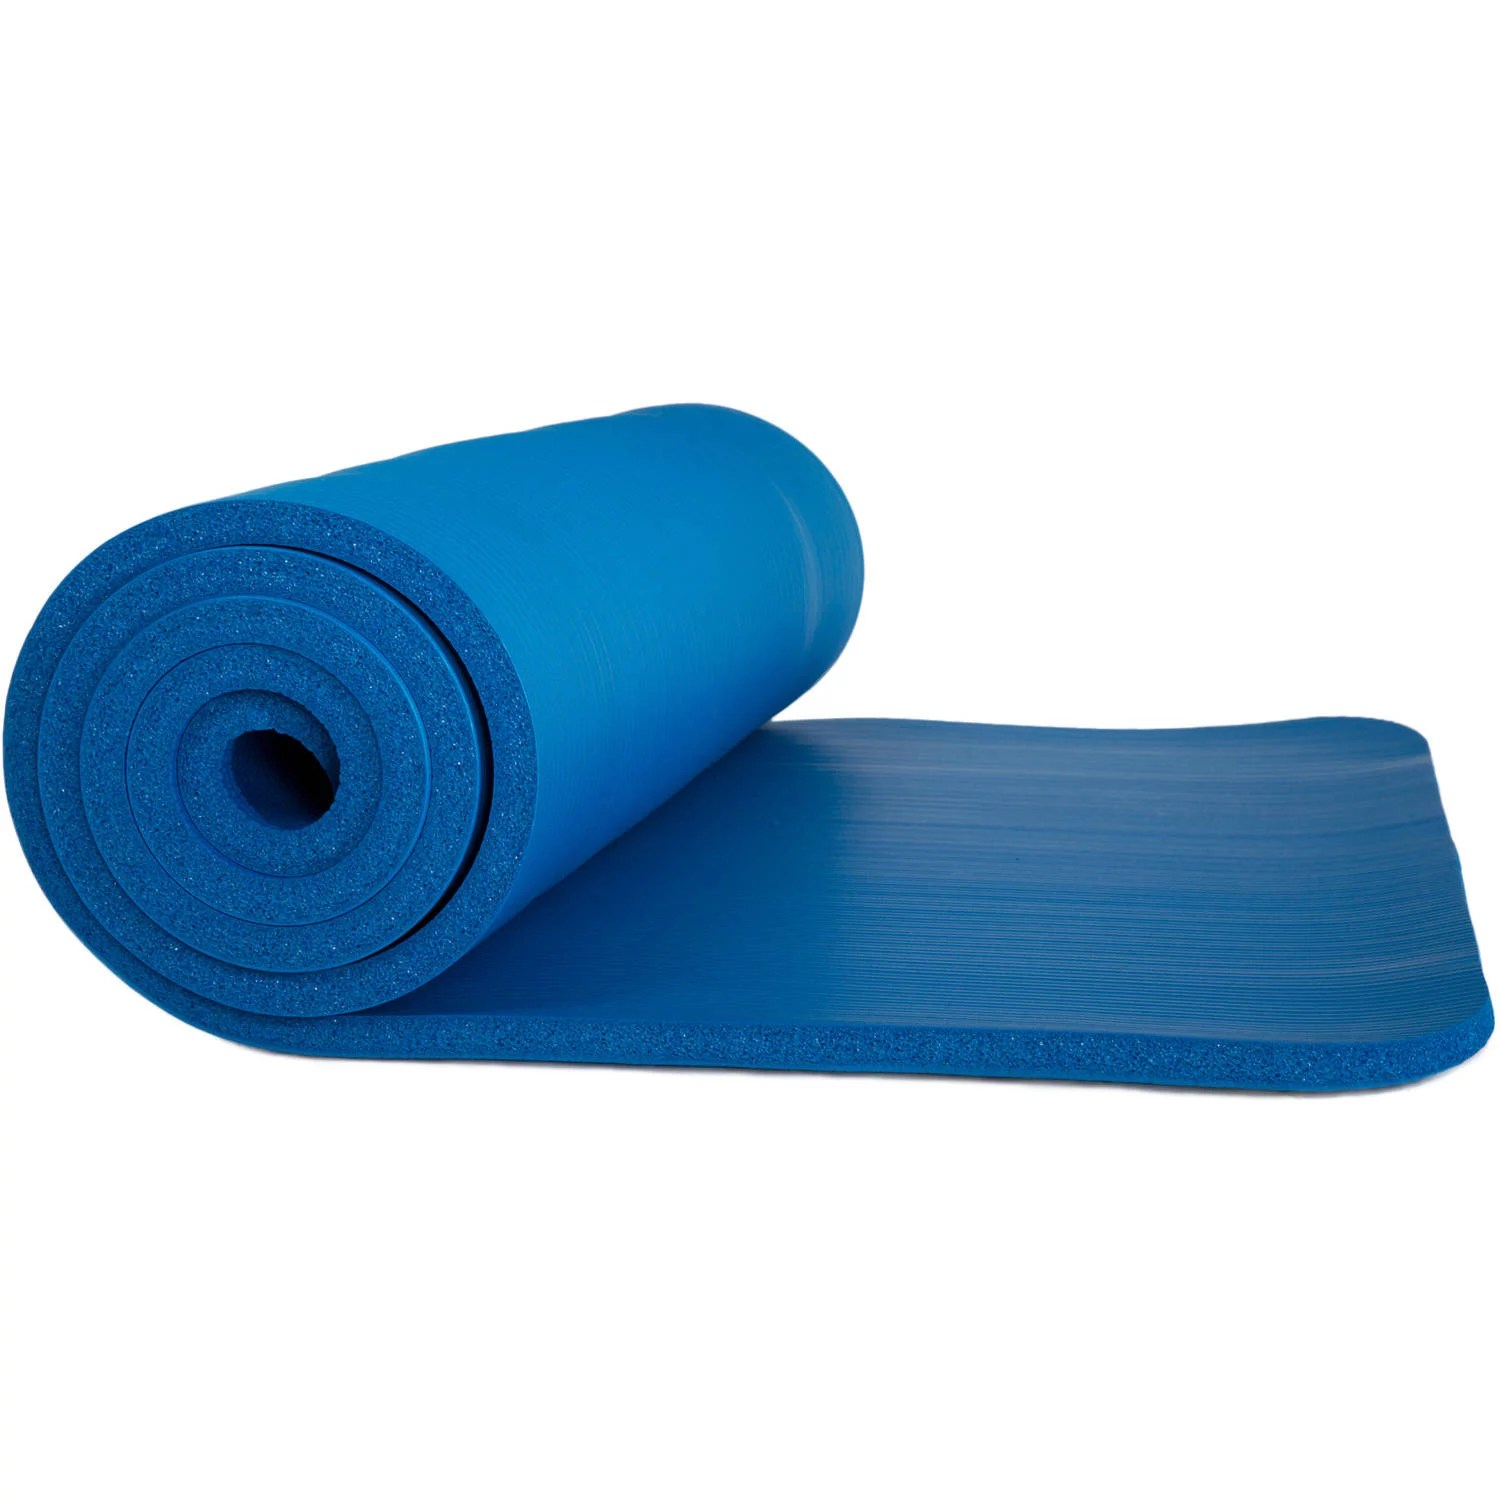 Closed Cell Foam Mat Stansport Packlite Foam Sleeping Pad Blue 19